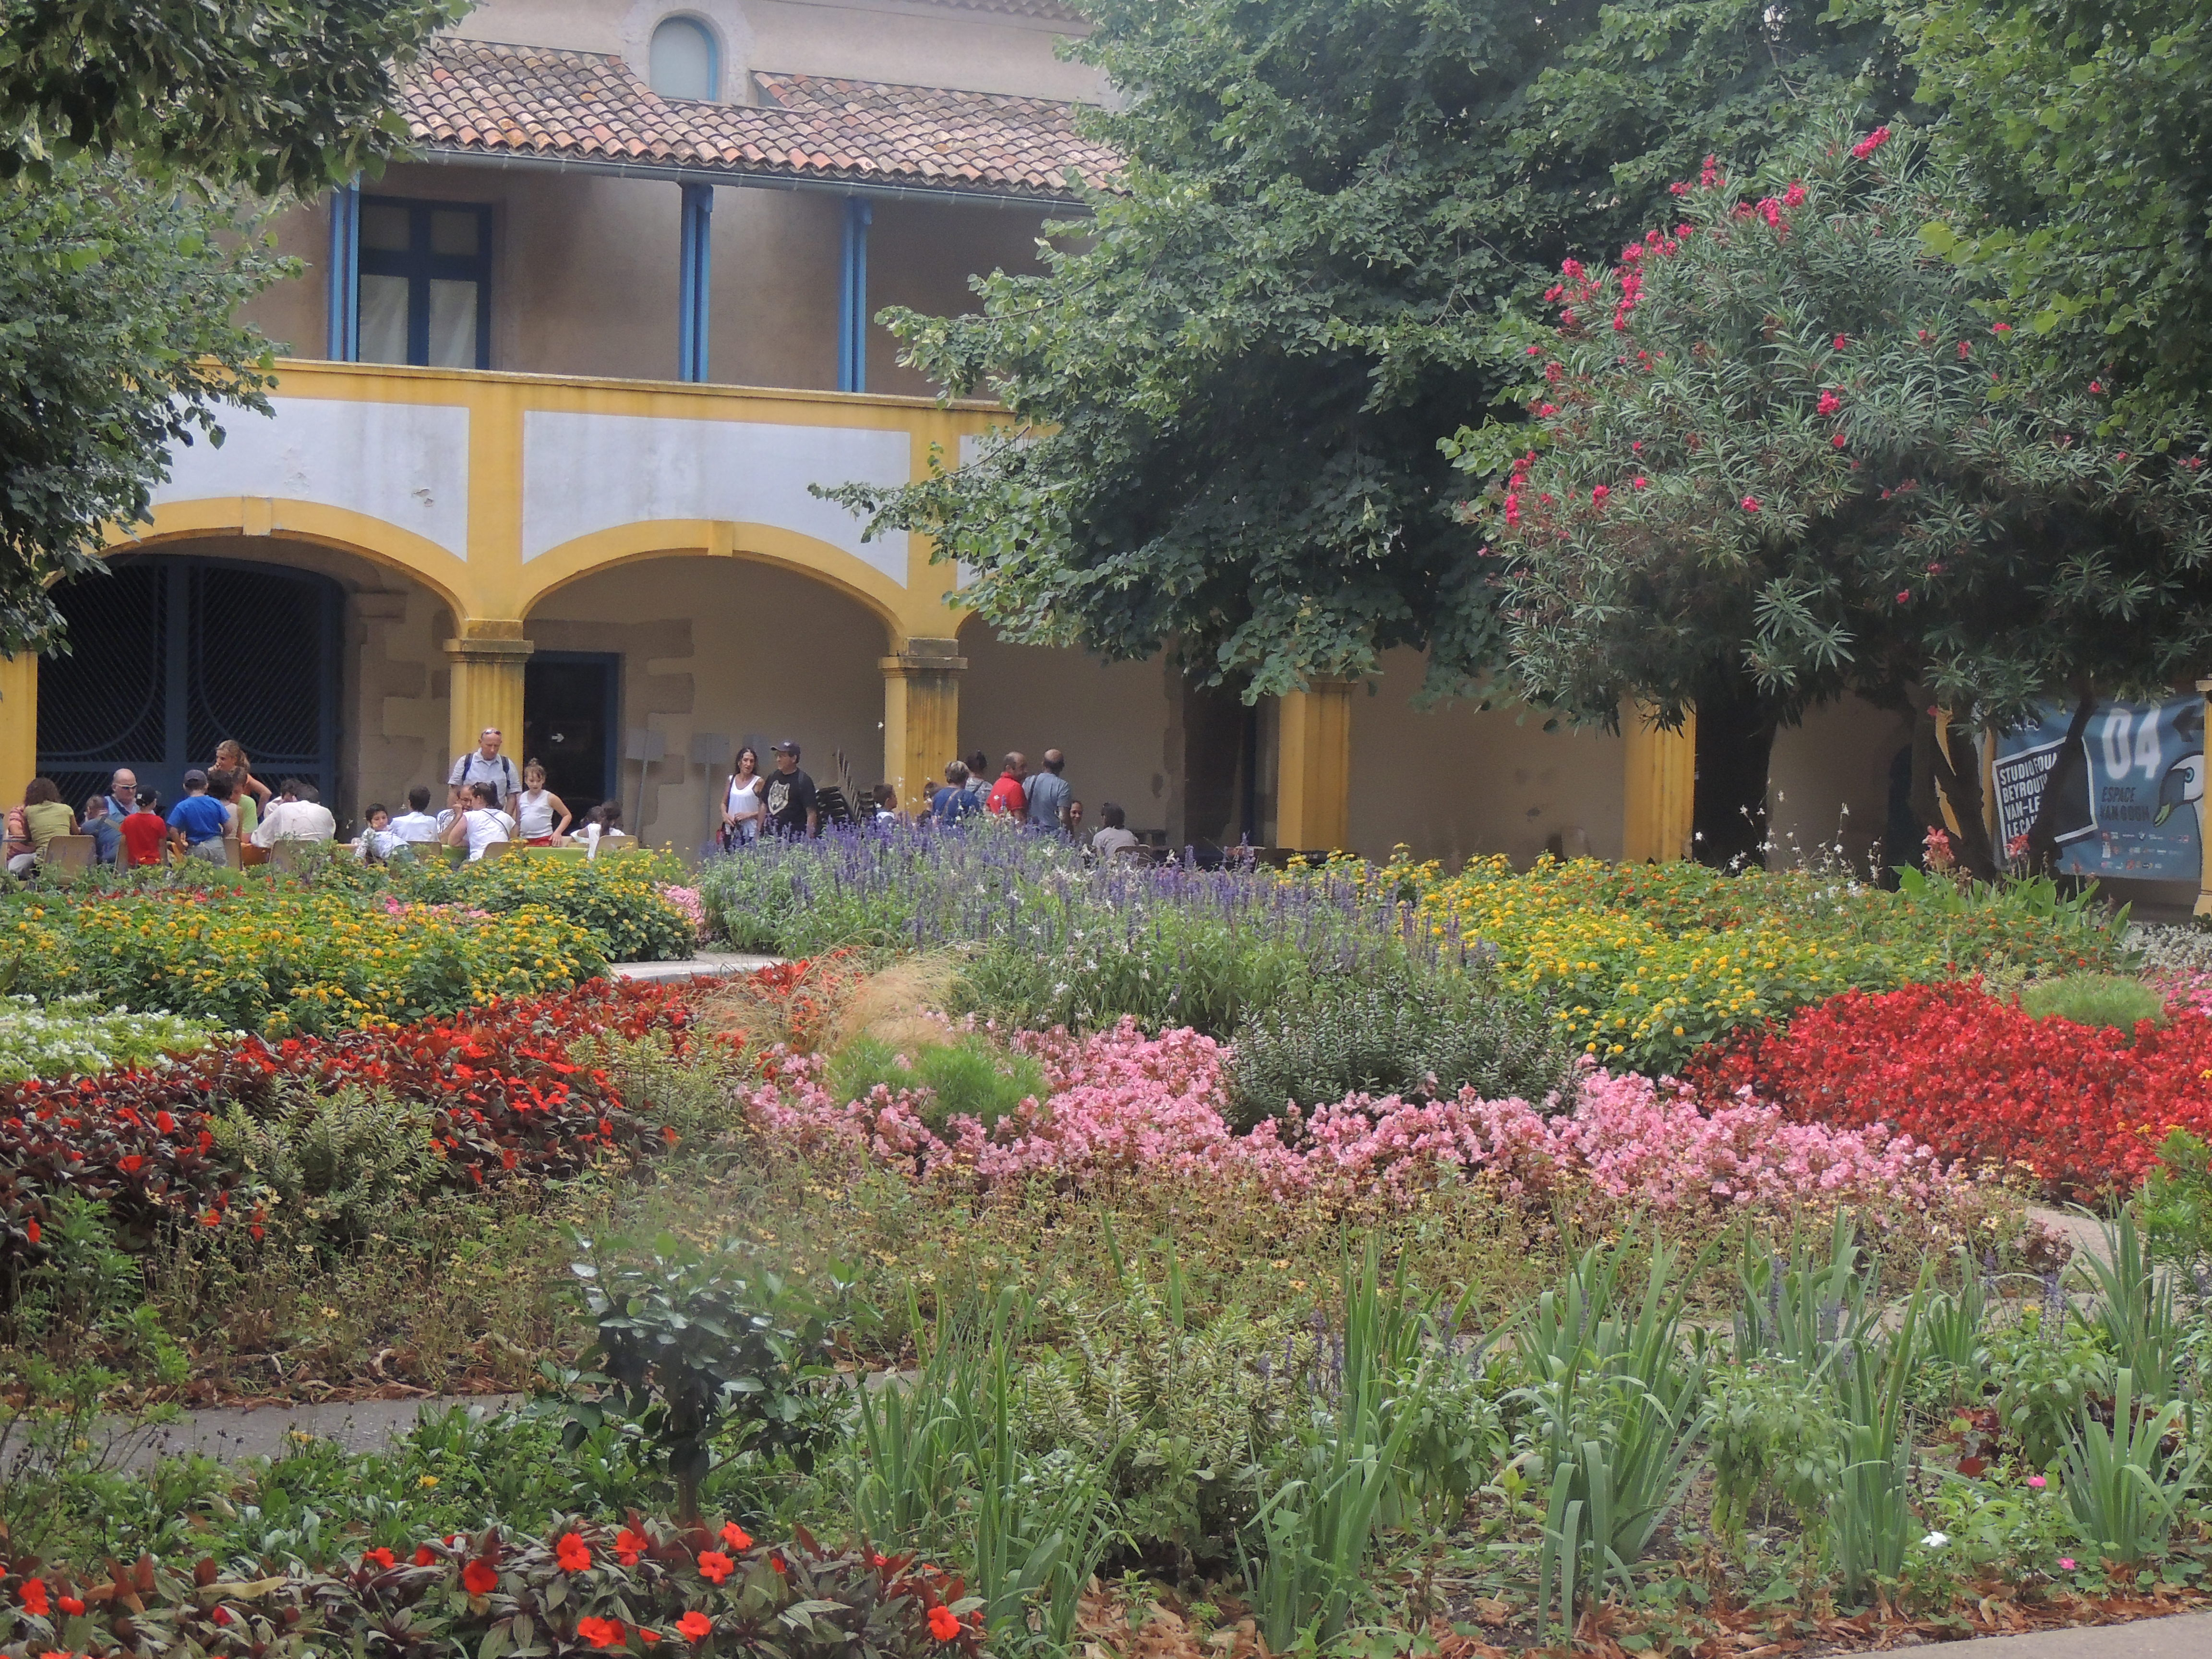 Courtyard garden of the Hospital in Arles